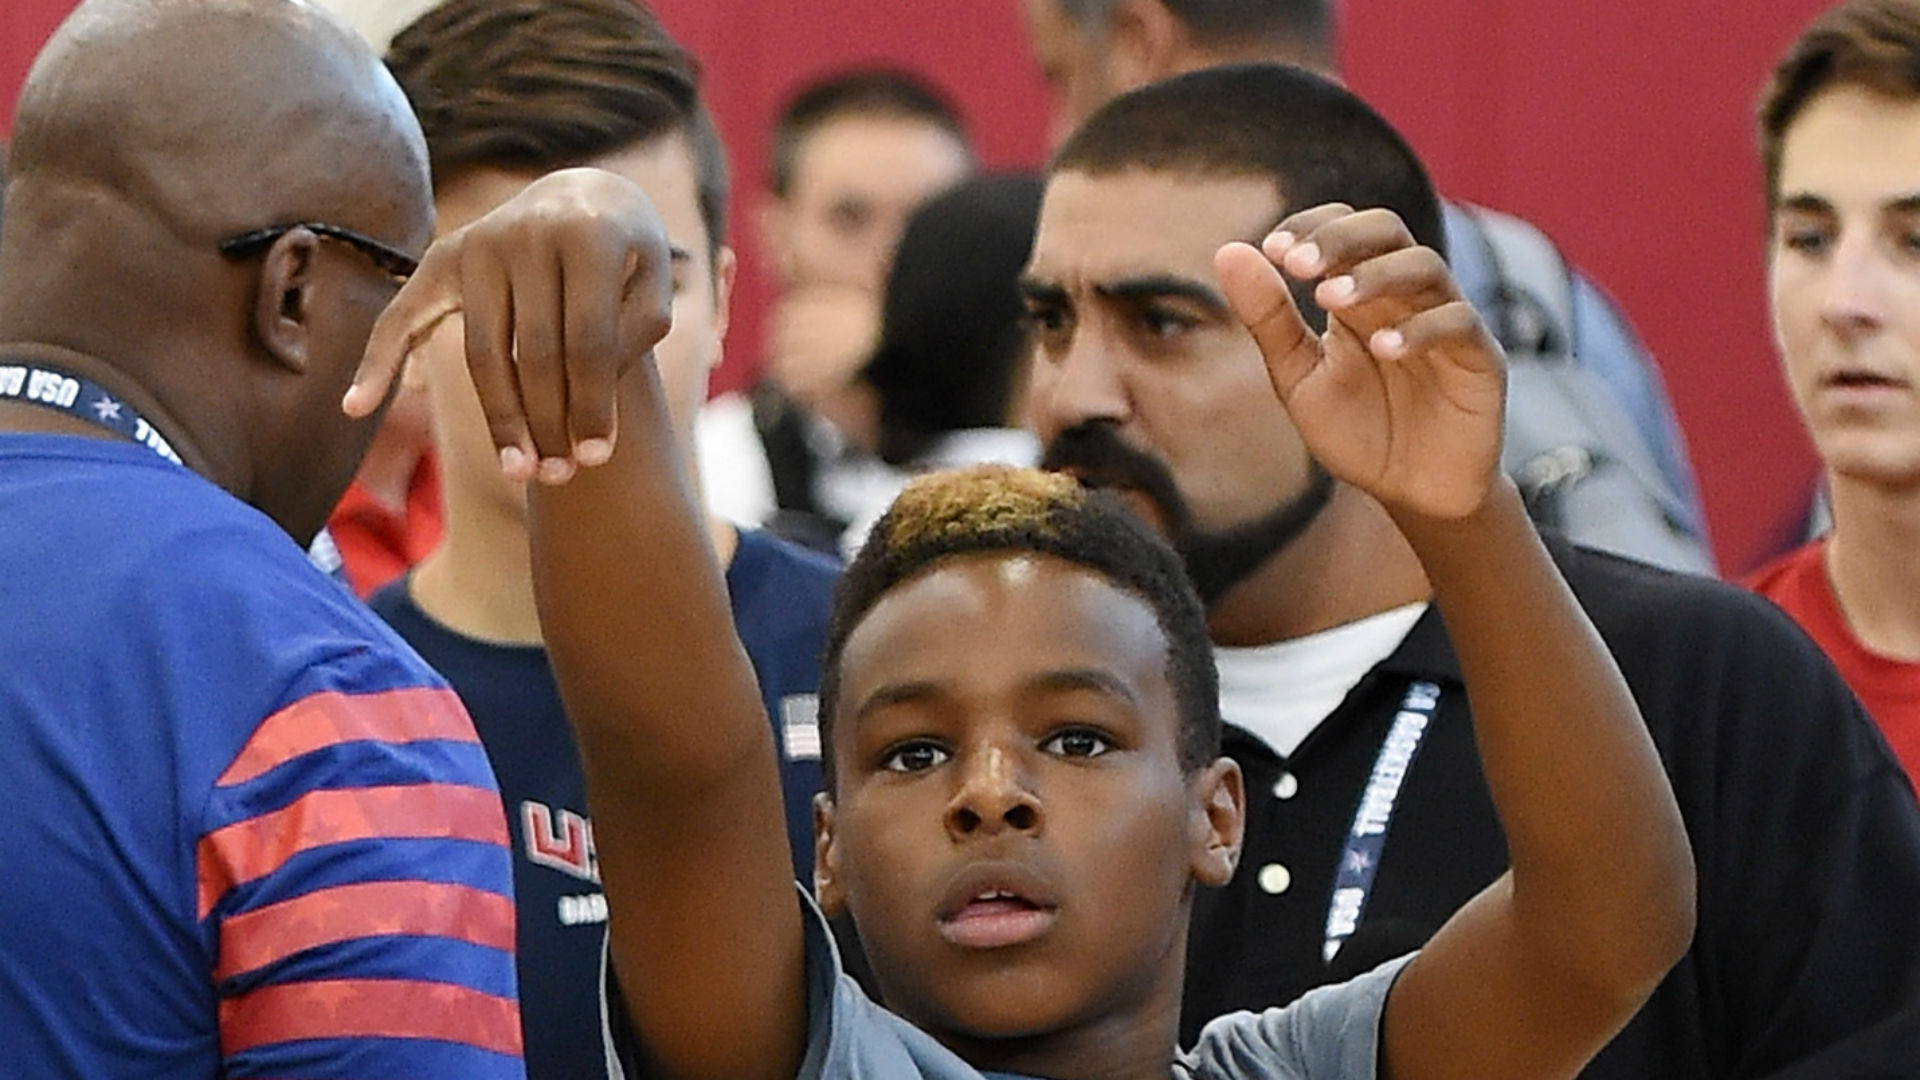 LeBron James Jr.'s highlights show he can throw pinpoint passes just like his dad - NBA - Sporting News ...